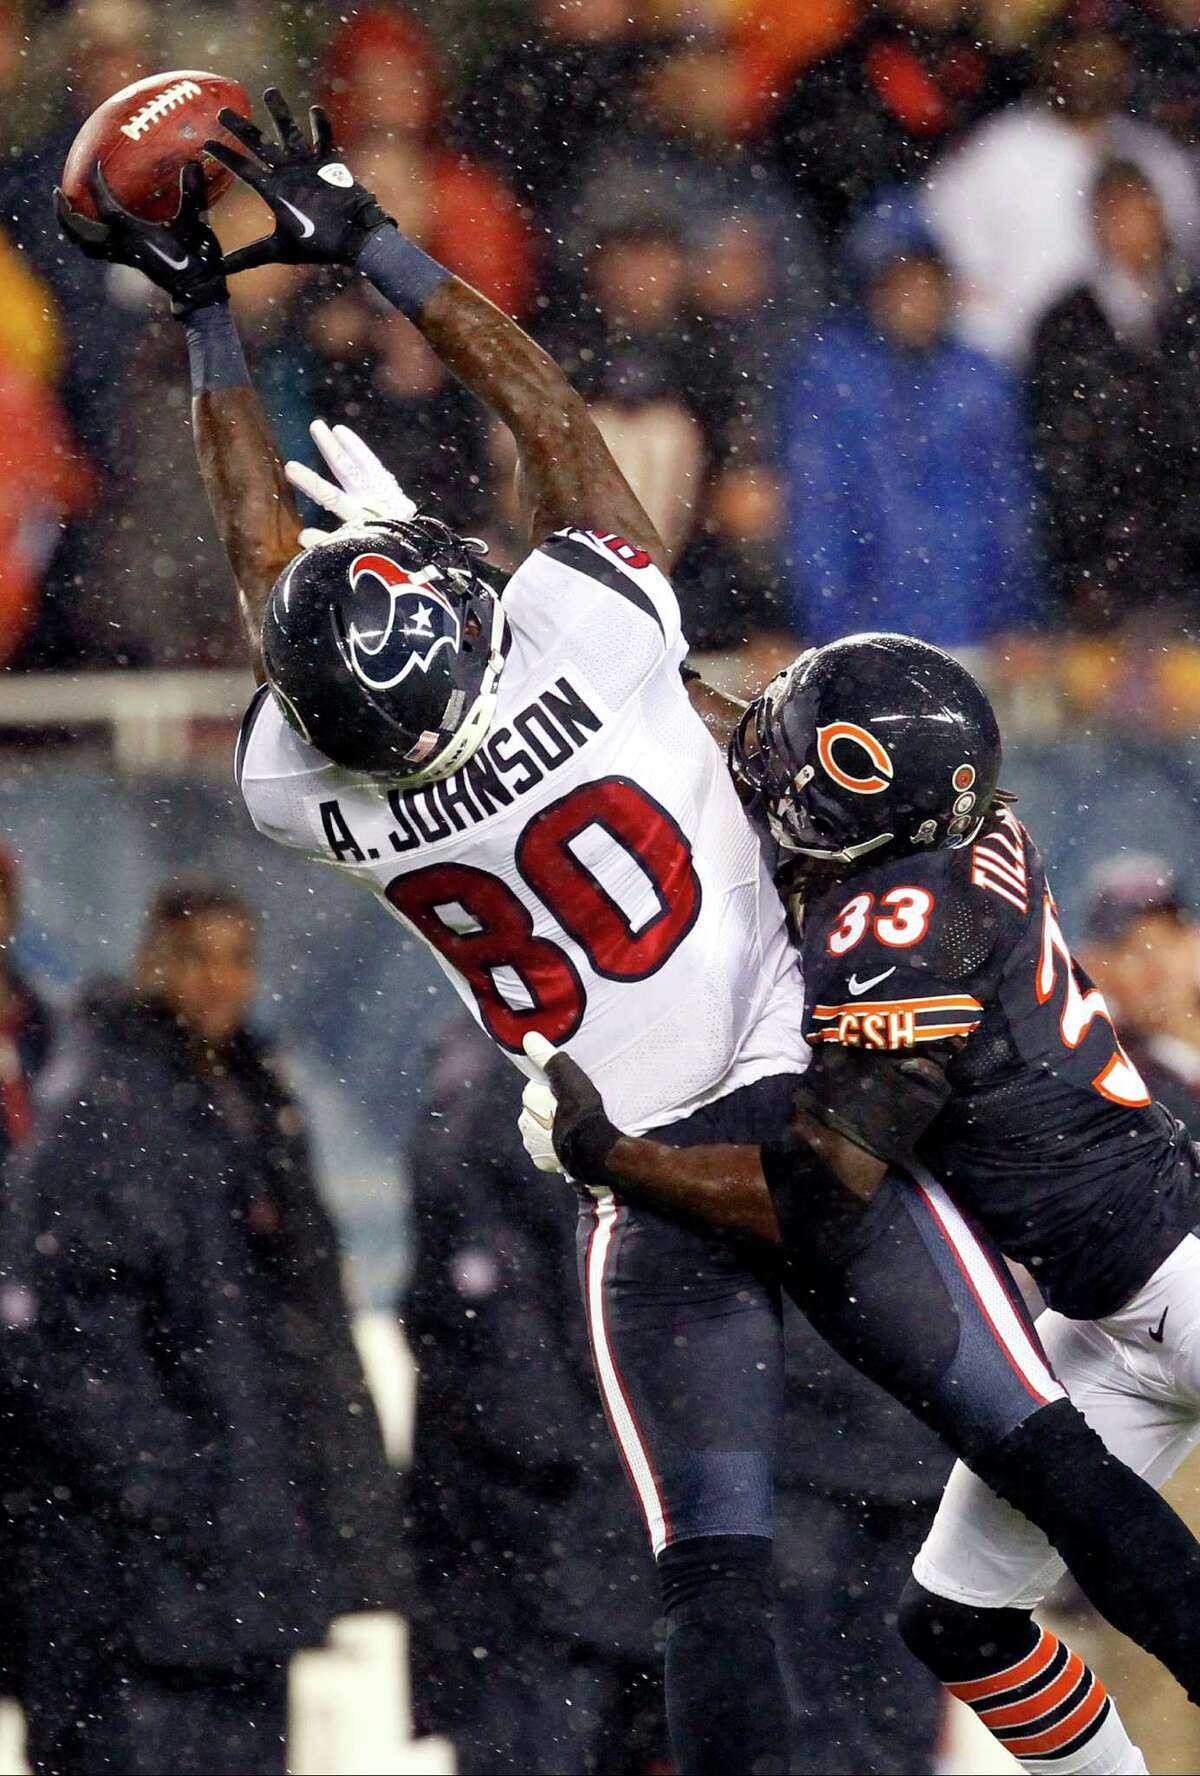 Chicago Bears cornerback Charles Tillman (33) breaks up a pass intended for Houston Texans wide receiver Andre Johnson (80) in the first half an NFL football game, Sunday, Nov. 11, 2012, in Chicago. (AP Photo/Charles Rex Arbogast)